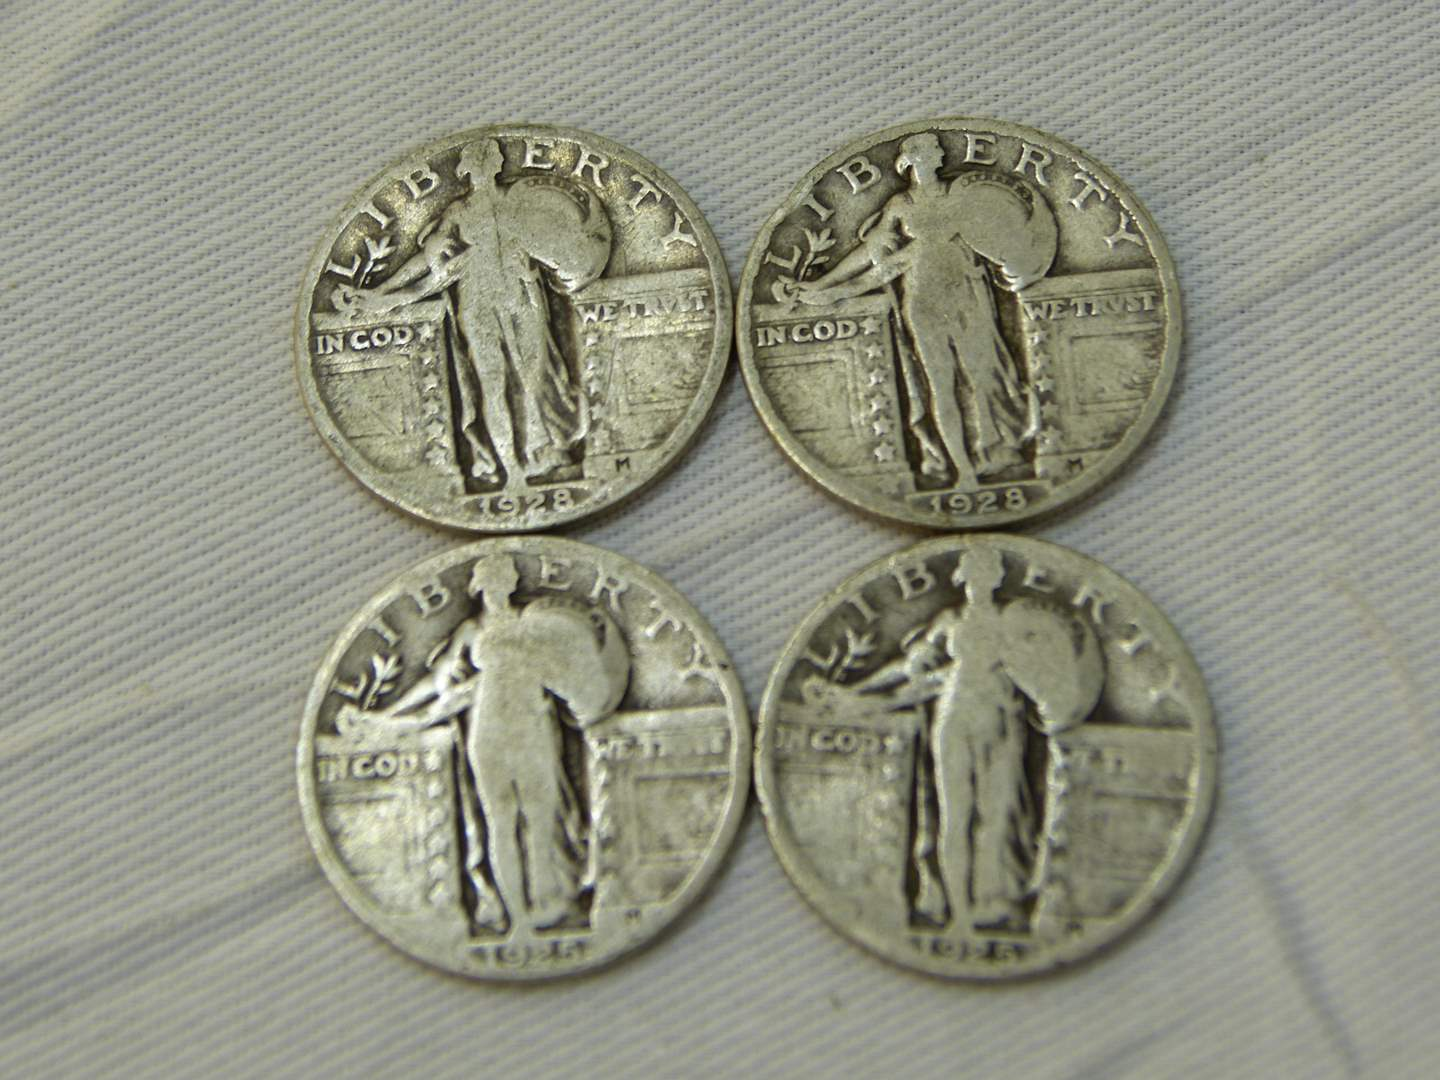 Lot # 122  4 US silver standing Liberty quarters various years & conditions (main image)